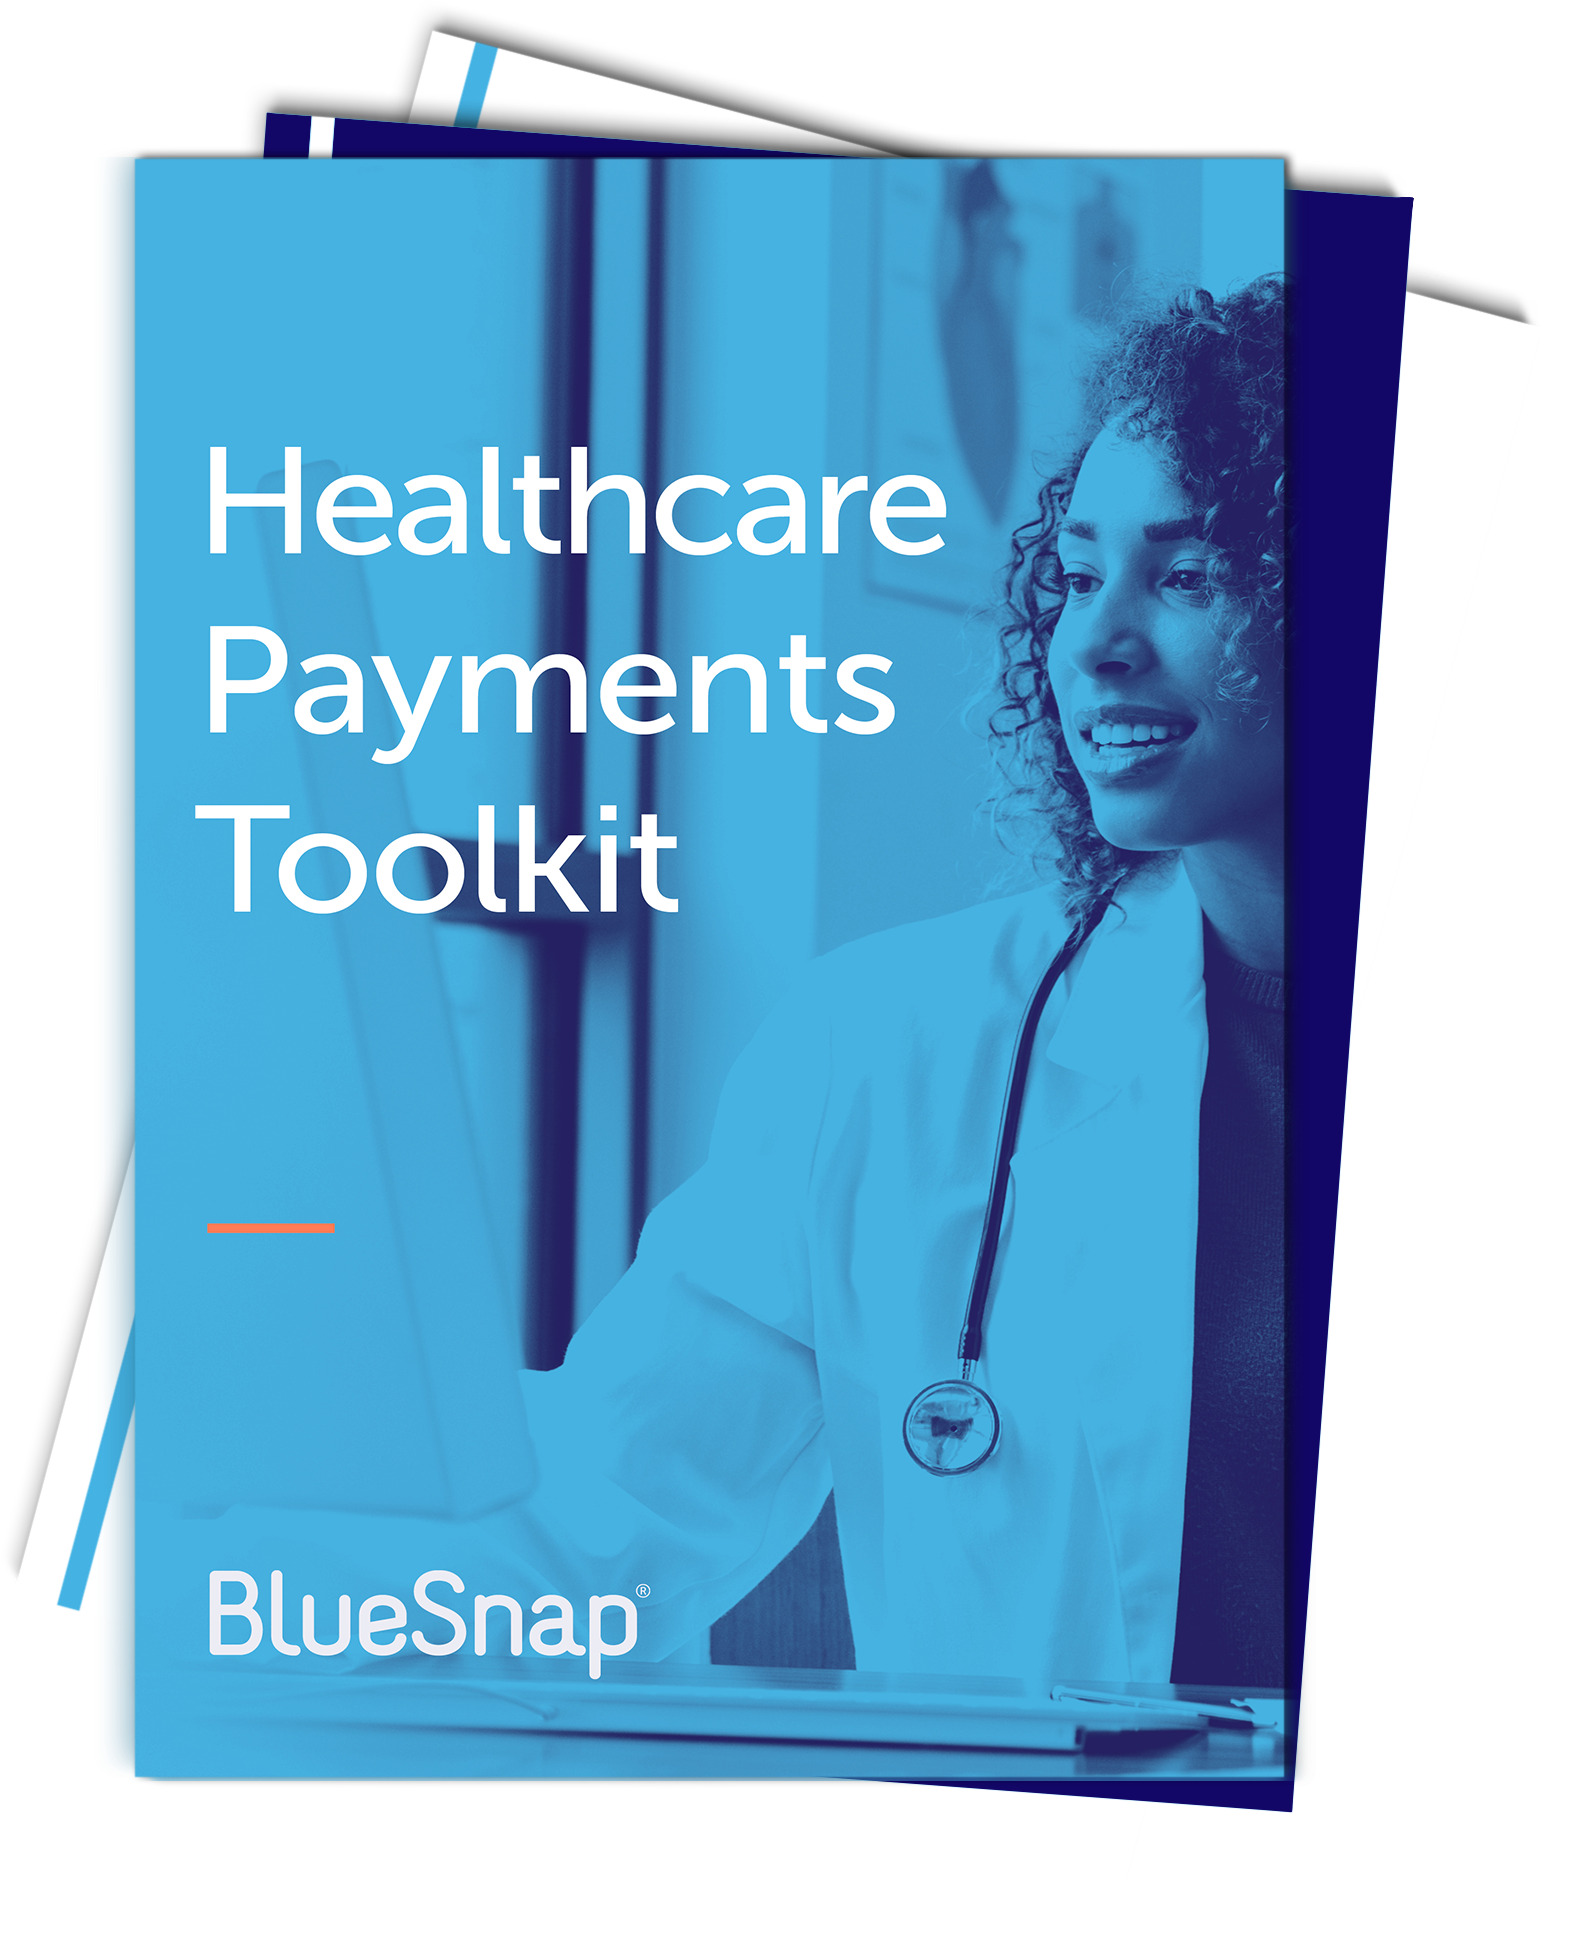 BLS_Healthcare_Toolkit_Cover_Image